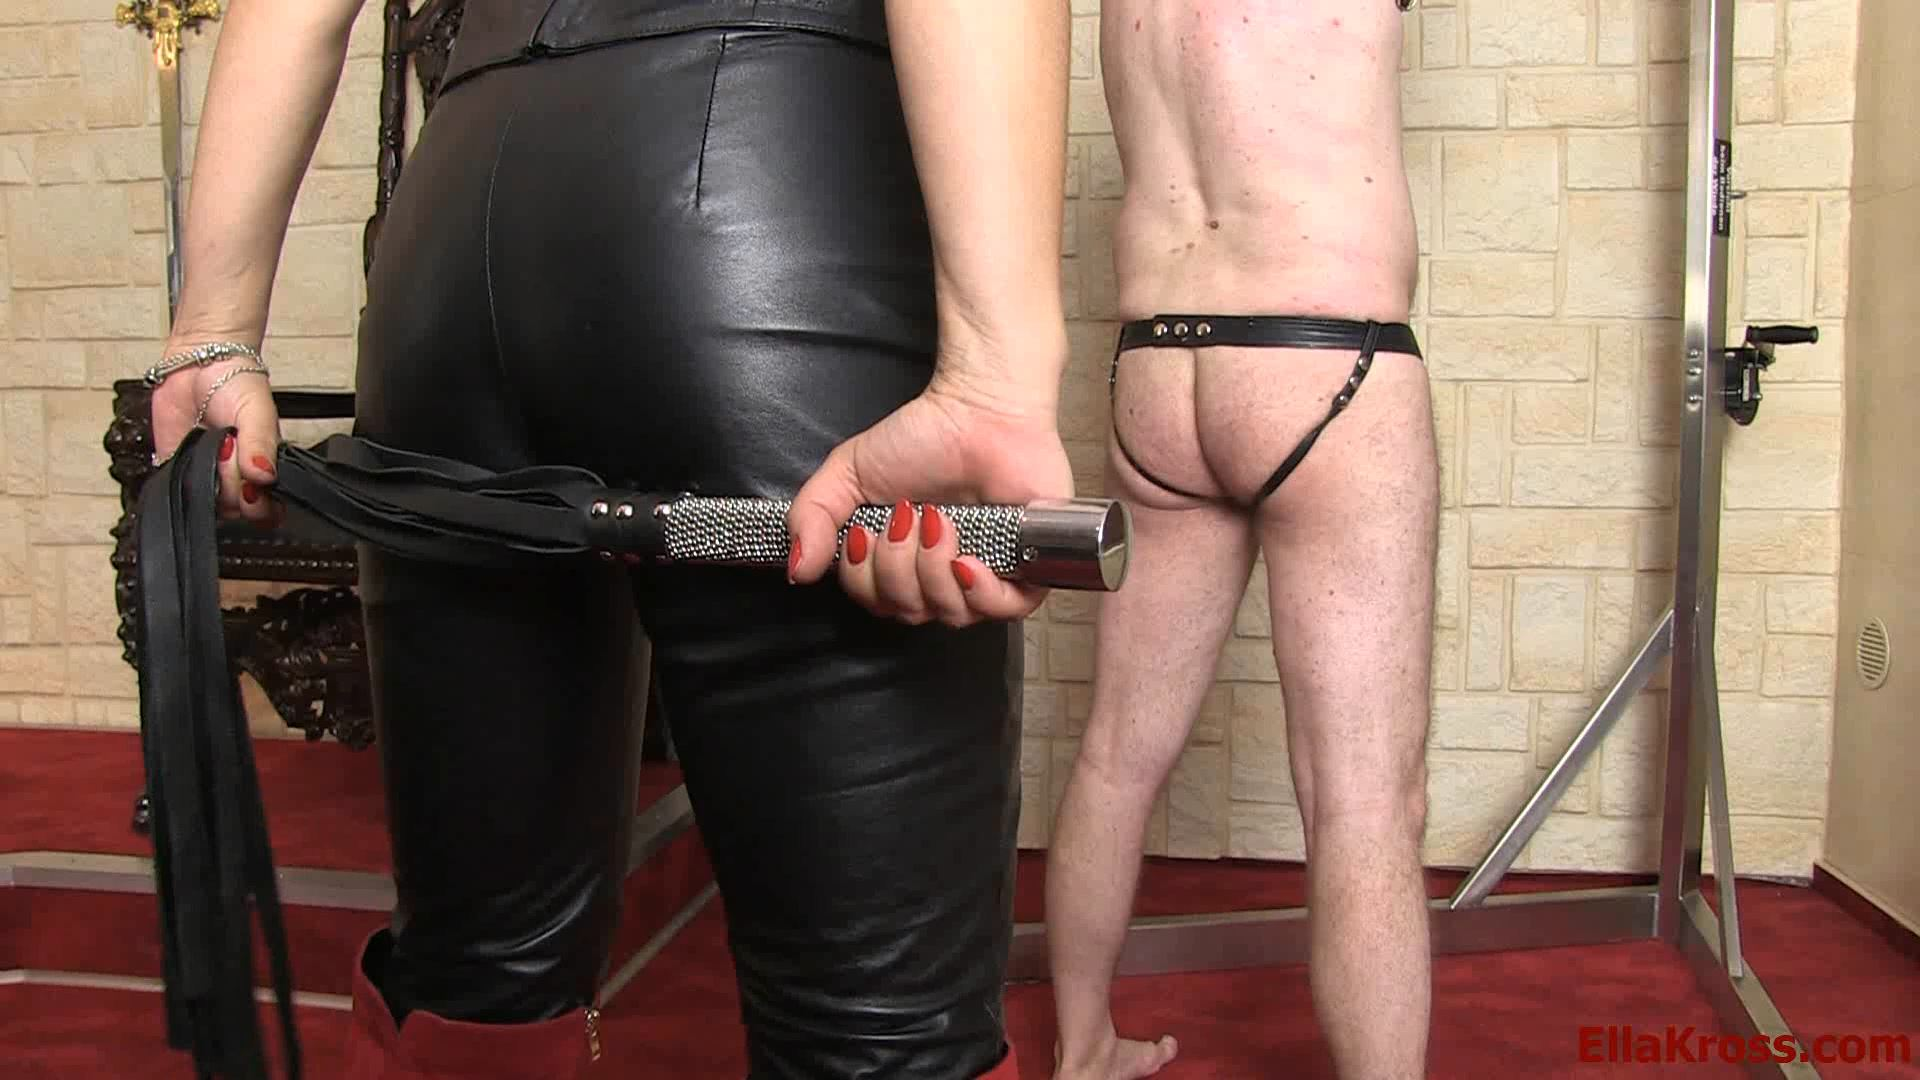 Ella Kross In Scene: Whipping My Slave Until He's Red - ELLAKROSS - FULL HD/1080p/MP4